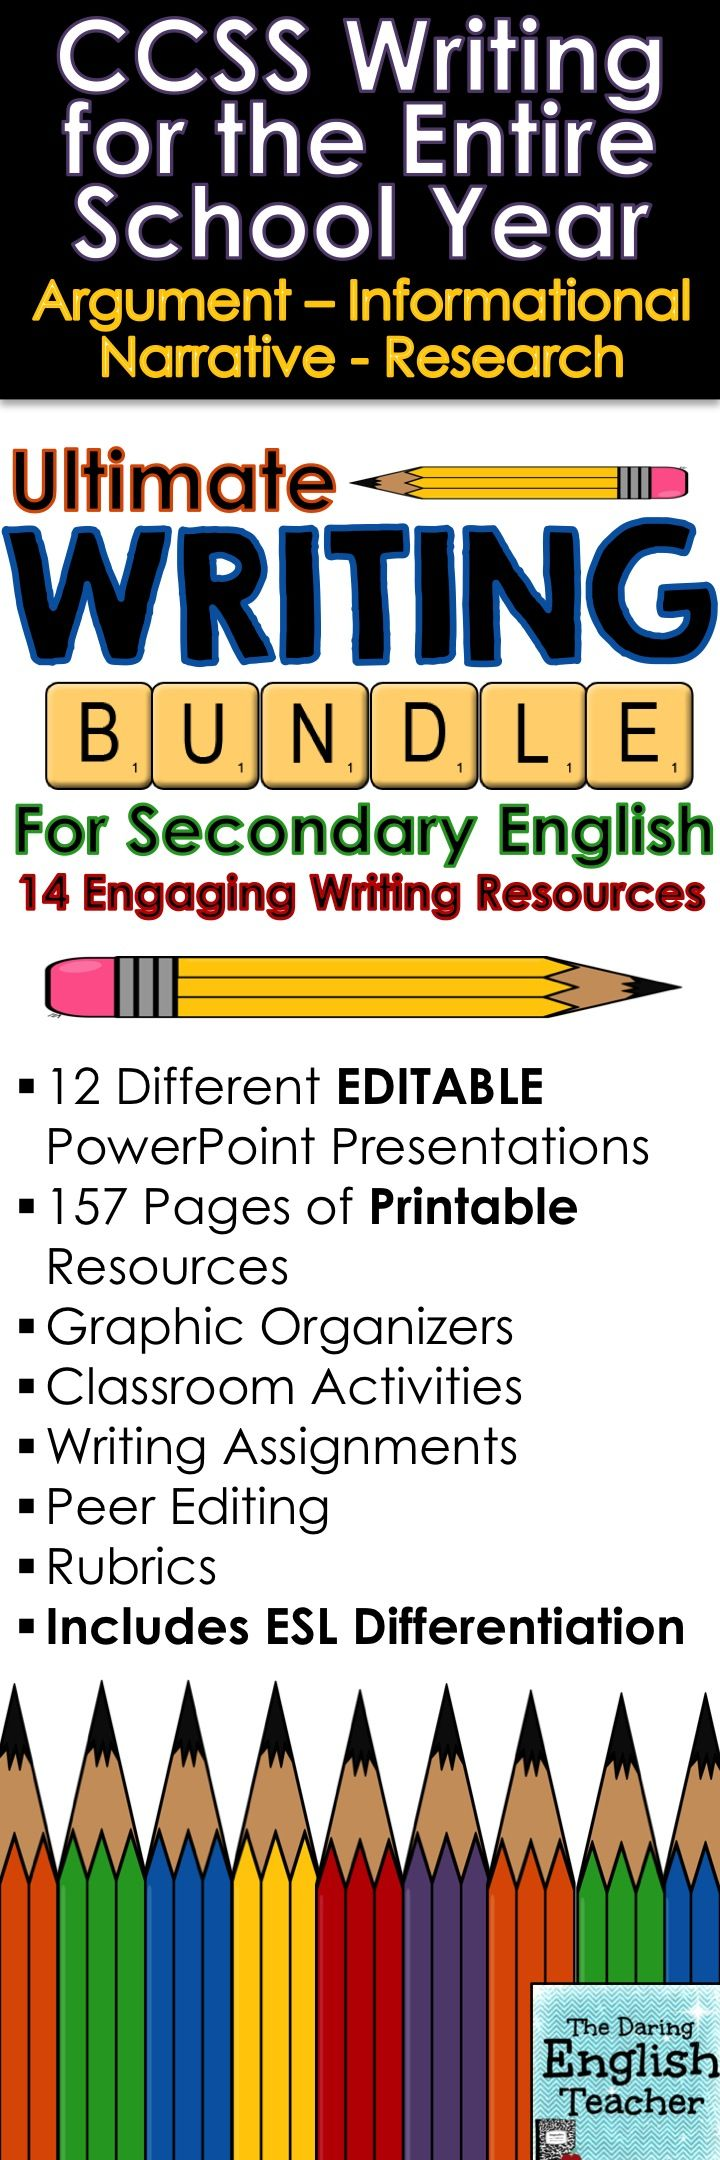 common core writing prompts high school This is a pdf with a set of fifteen creative writing prompts that are aligned to common core writing anchor standards 1,2, and 3 these are visual prompts and are meant to be used for practice on common core writing anchor standards they are suitable for upper elementary, middle school, and high school.